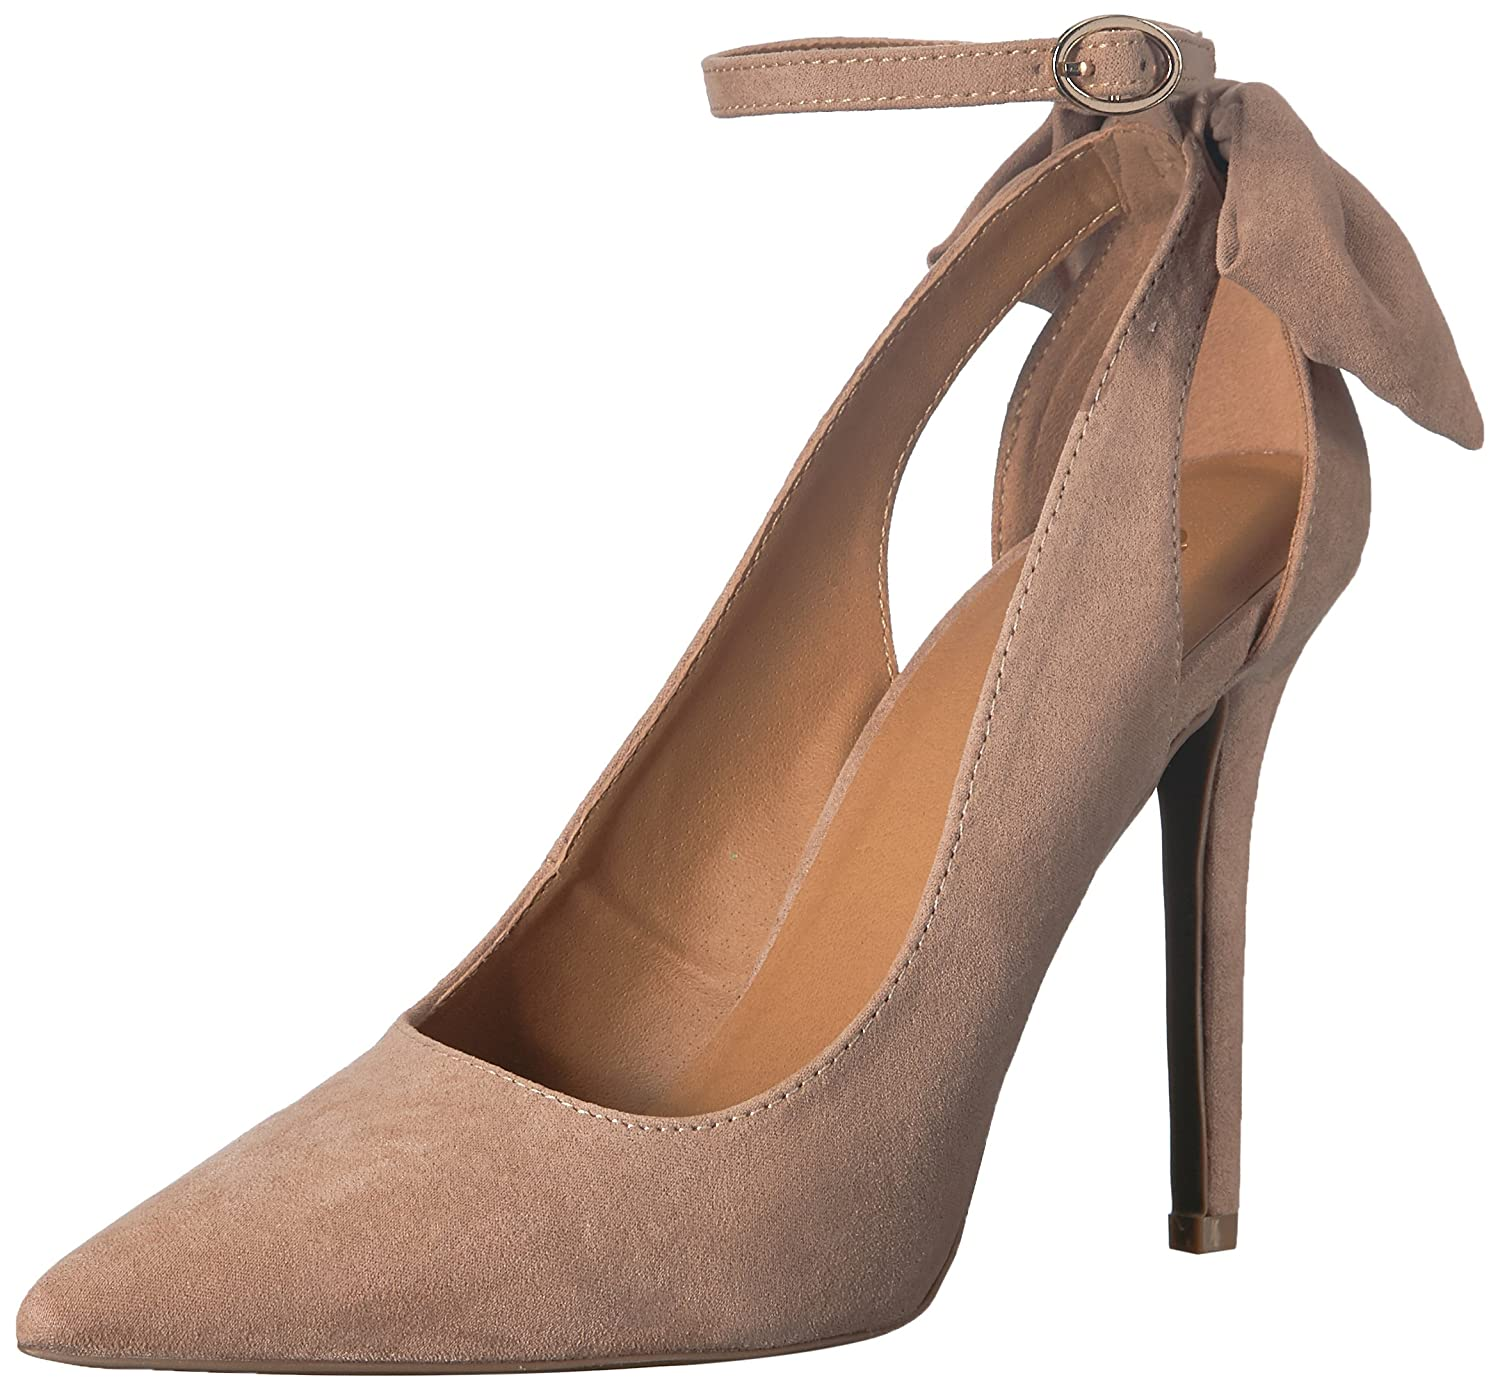 Qupid Women's Pointy Toe Pump B079JP3P67 6.5 B(M) US|Warm Taupe